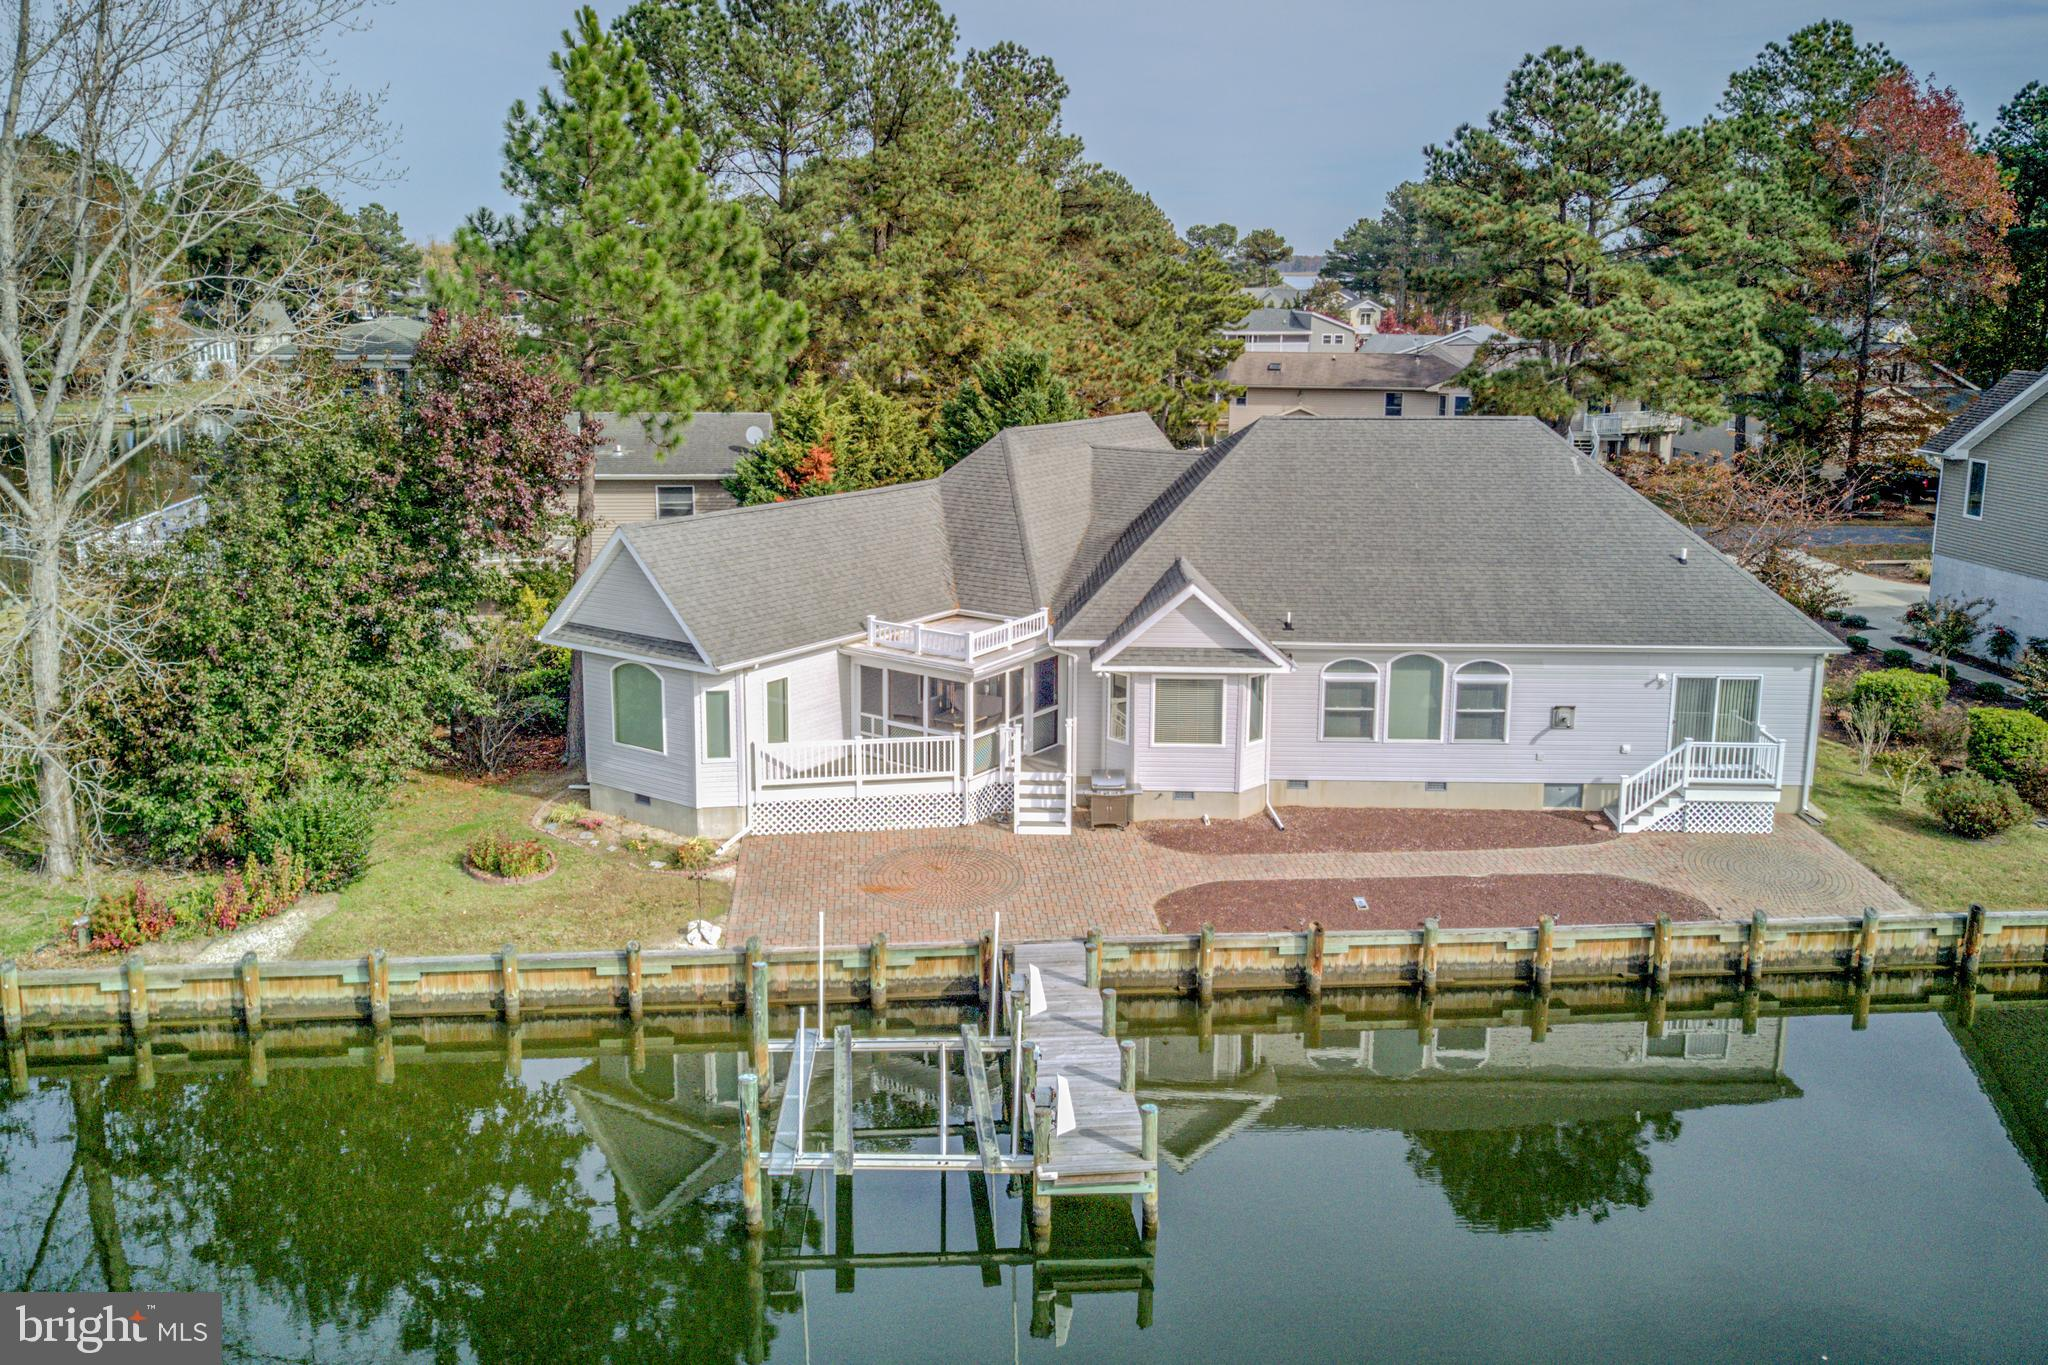 5 LIBERTY BELL Ct, Ocean Pines, MD, 21811